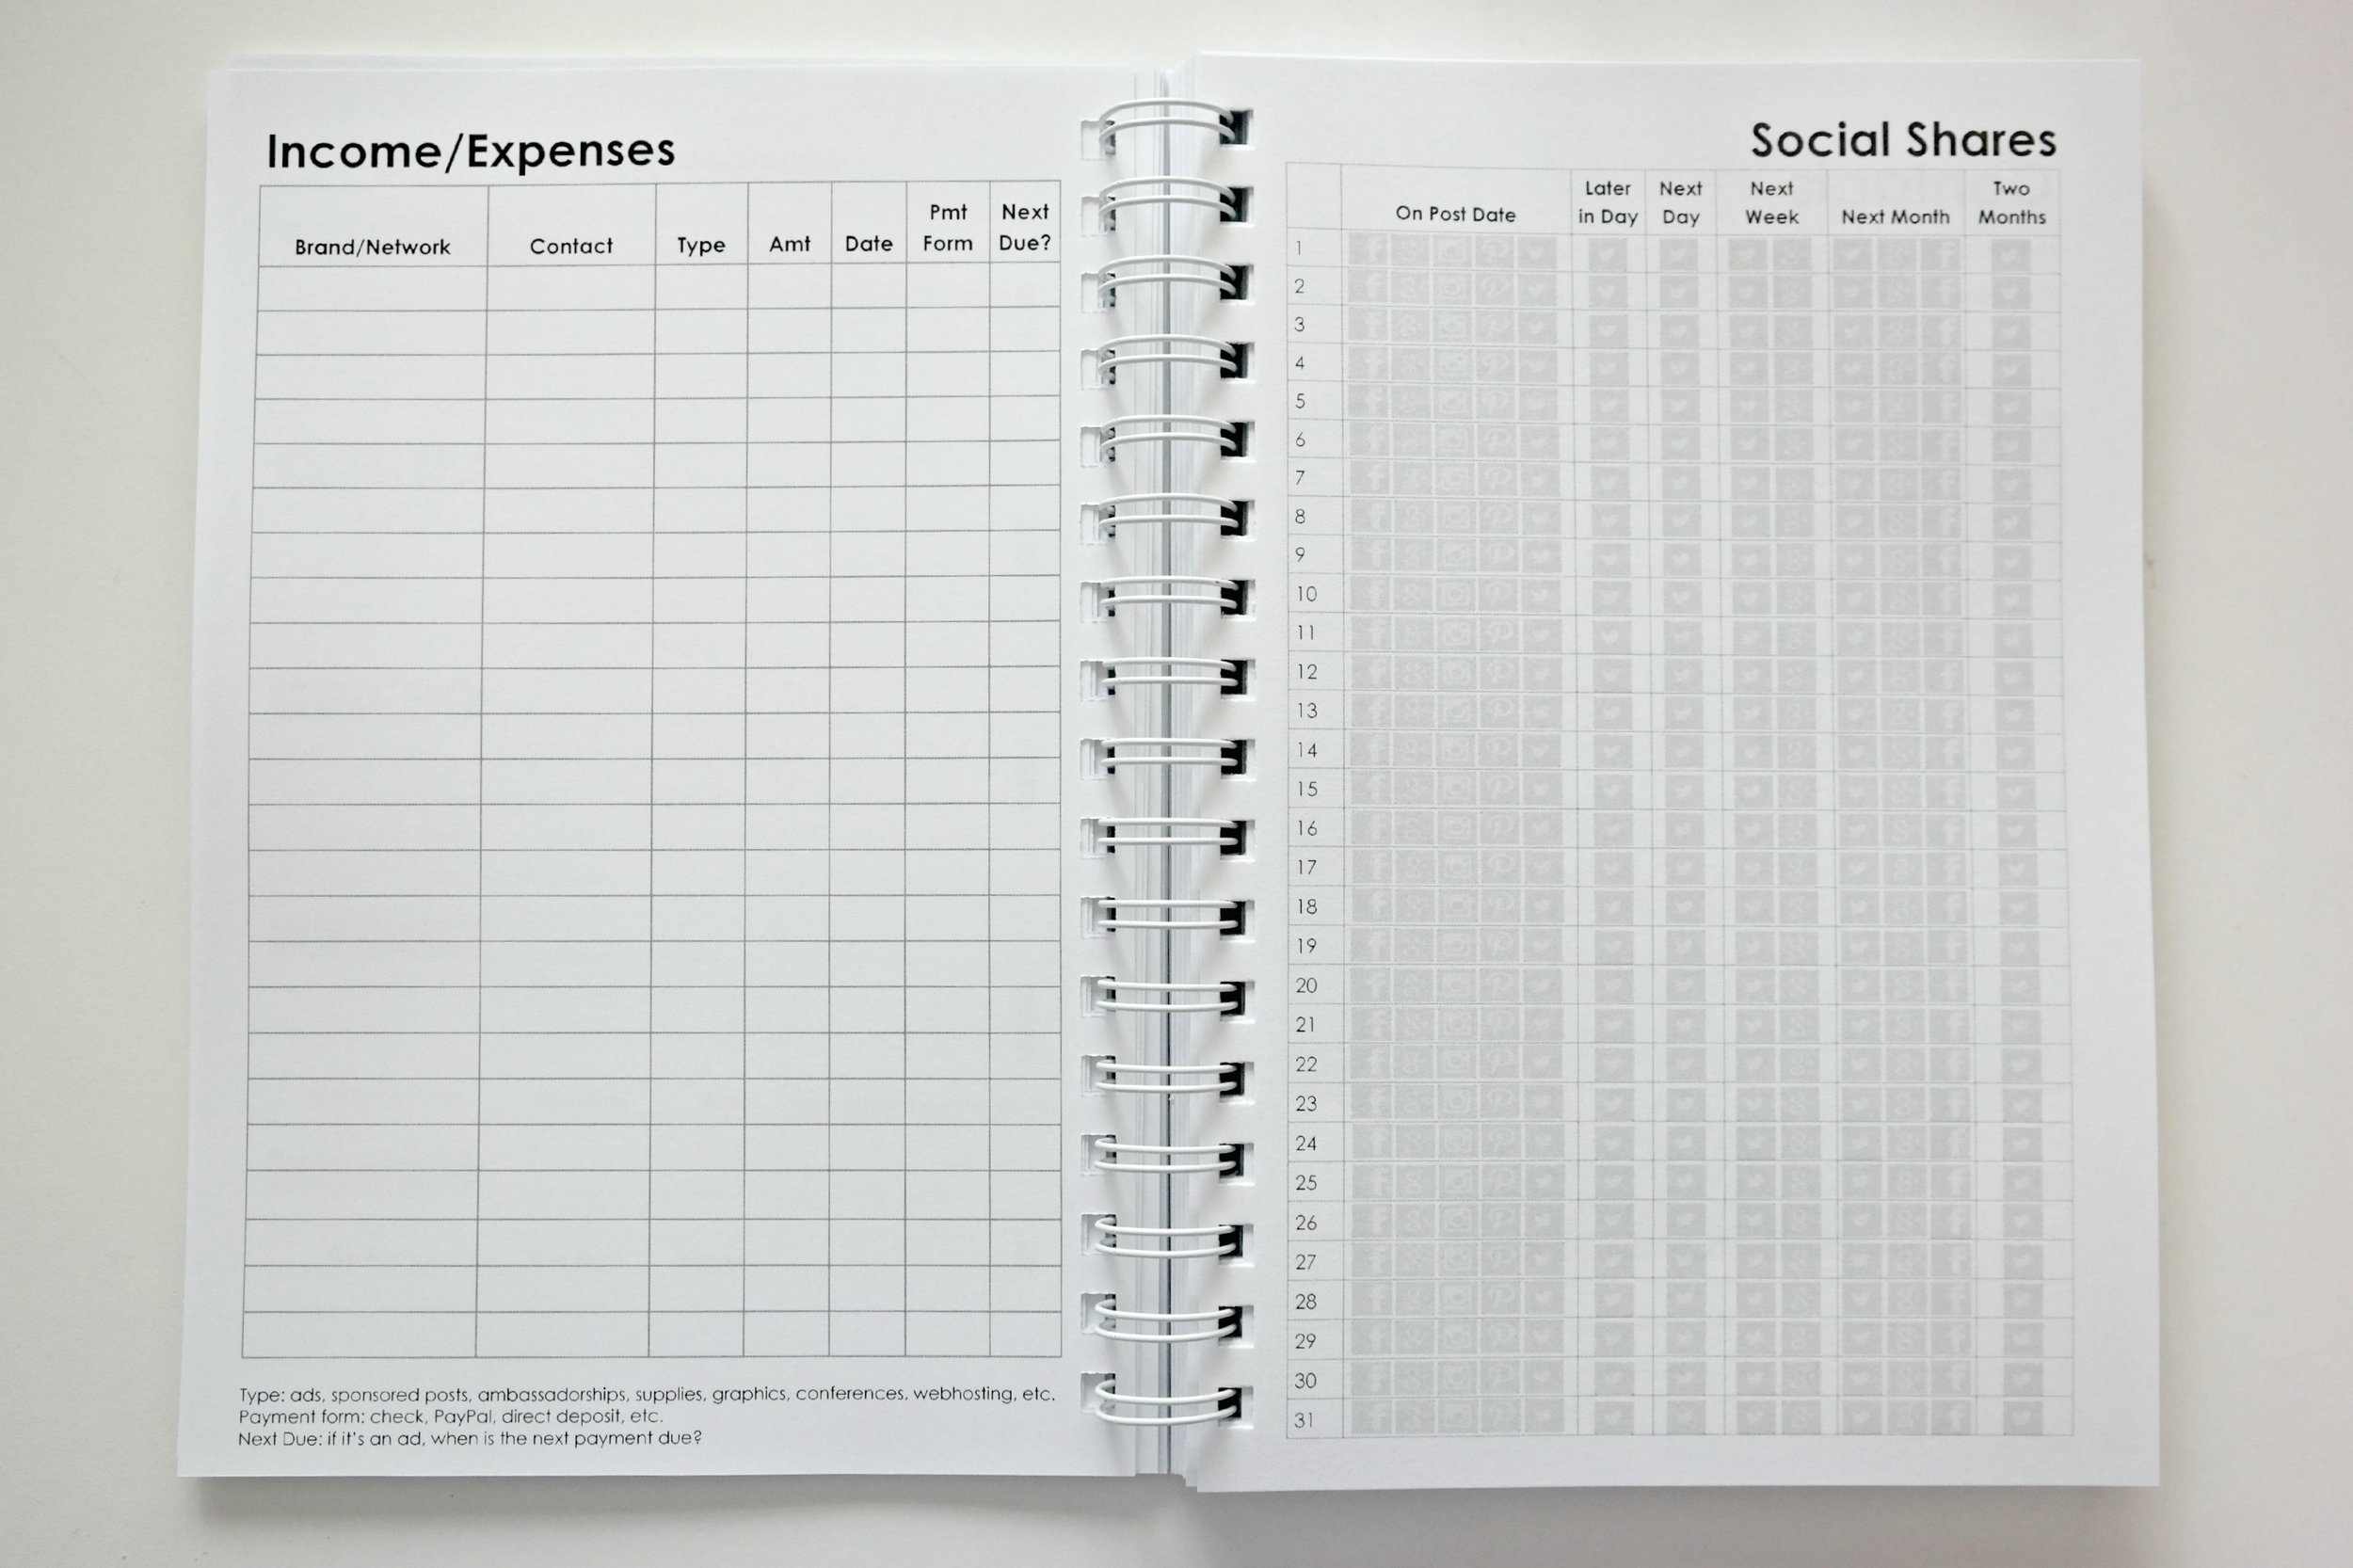 Income/Expenses & Social Shares Tracking